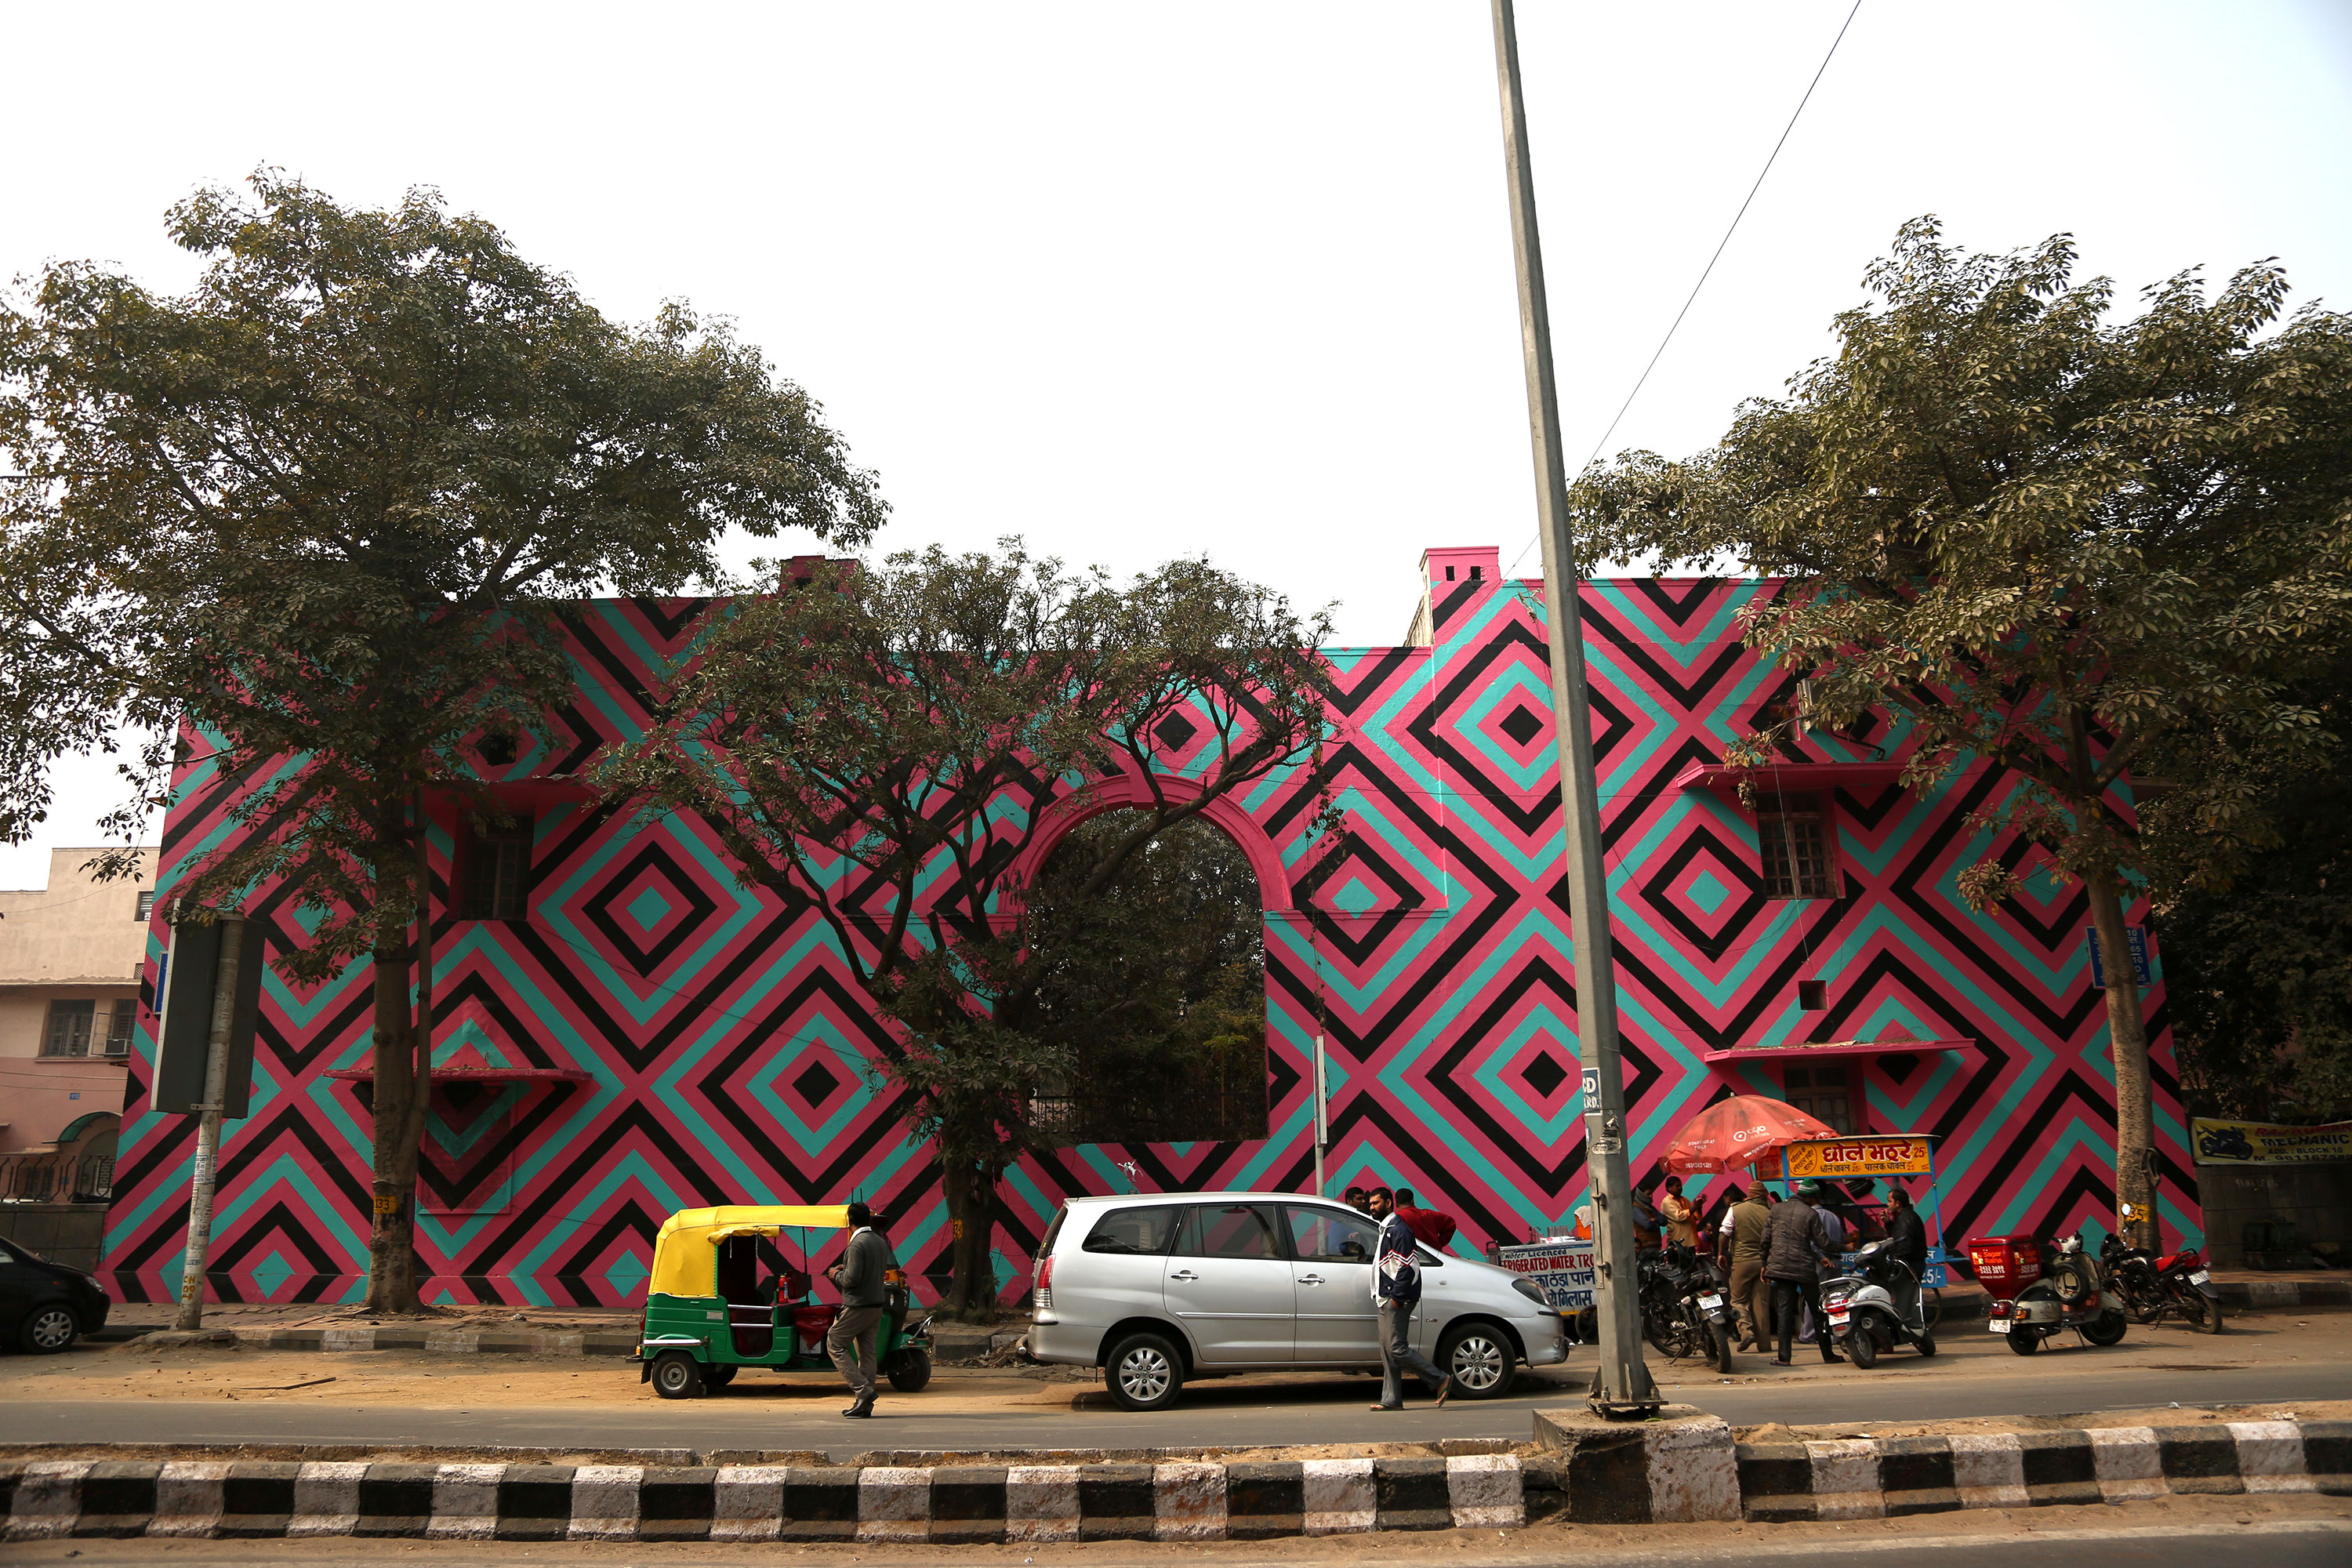 The 2016 edition of the India St+ Art Festival in Delhi seeks to redefine public places by redesigning public spaces. [Showkat Shafi/Al Jazeera]